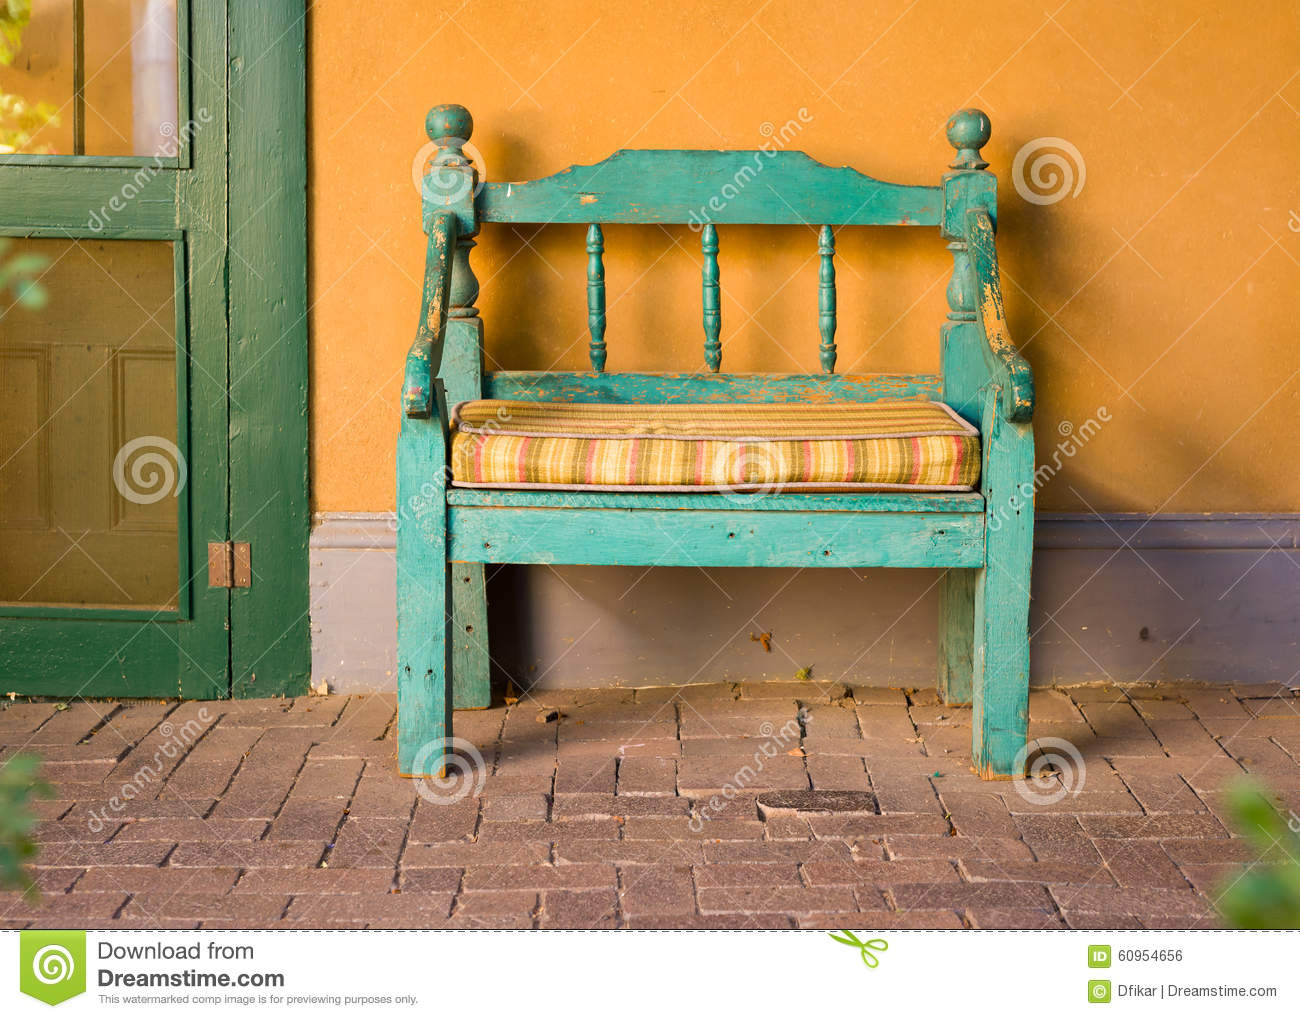 Wooden Bench Seats For Fans On Soccer Football Field Stock